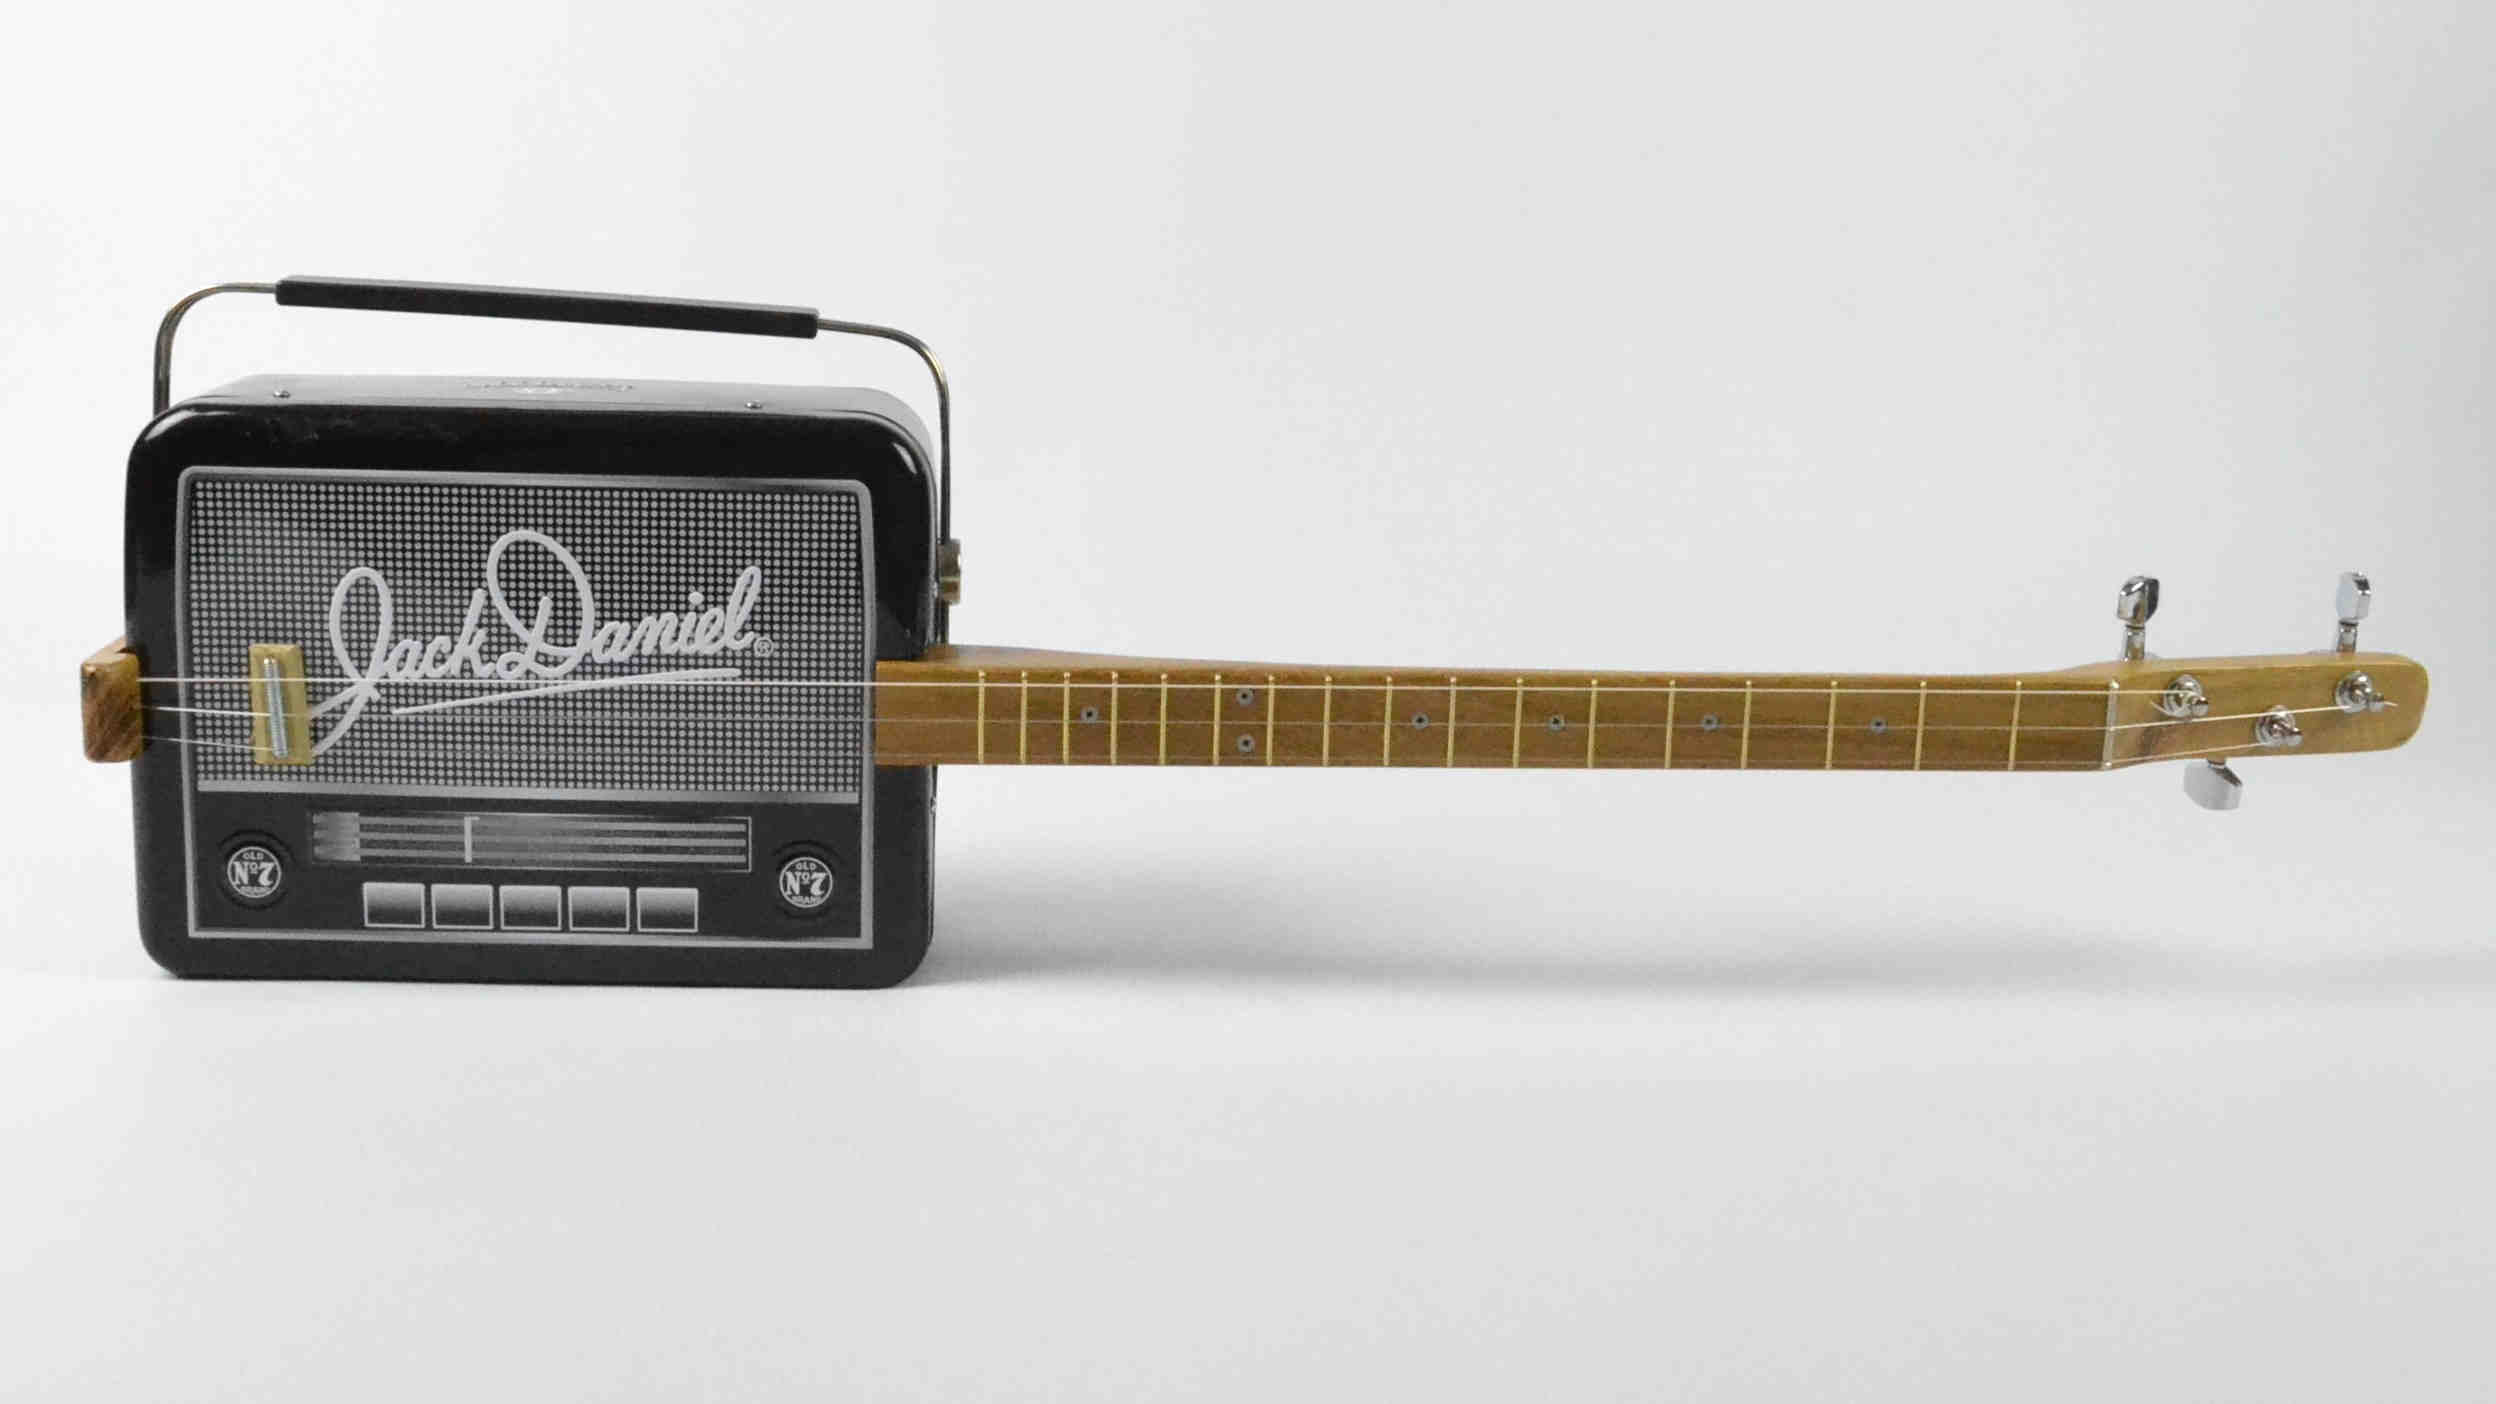 The Jack Danials Radio Tin Guitar